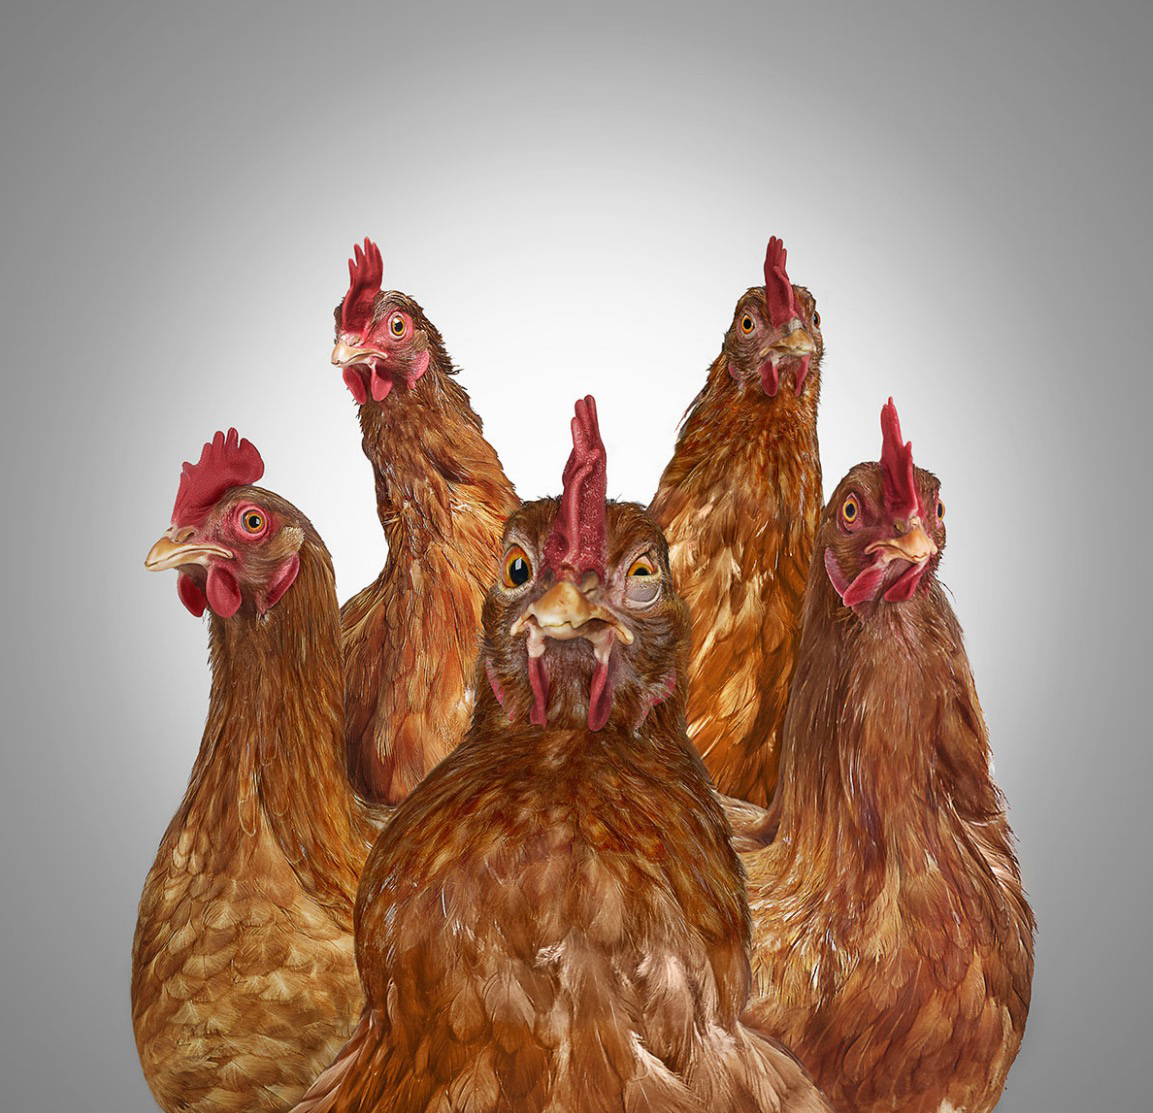 Five startled chickens. One dominant in front with pumped out chest Copyright Gandee Vasan